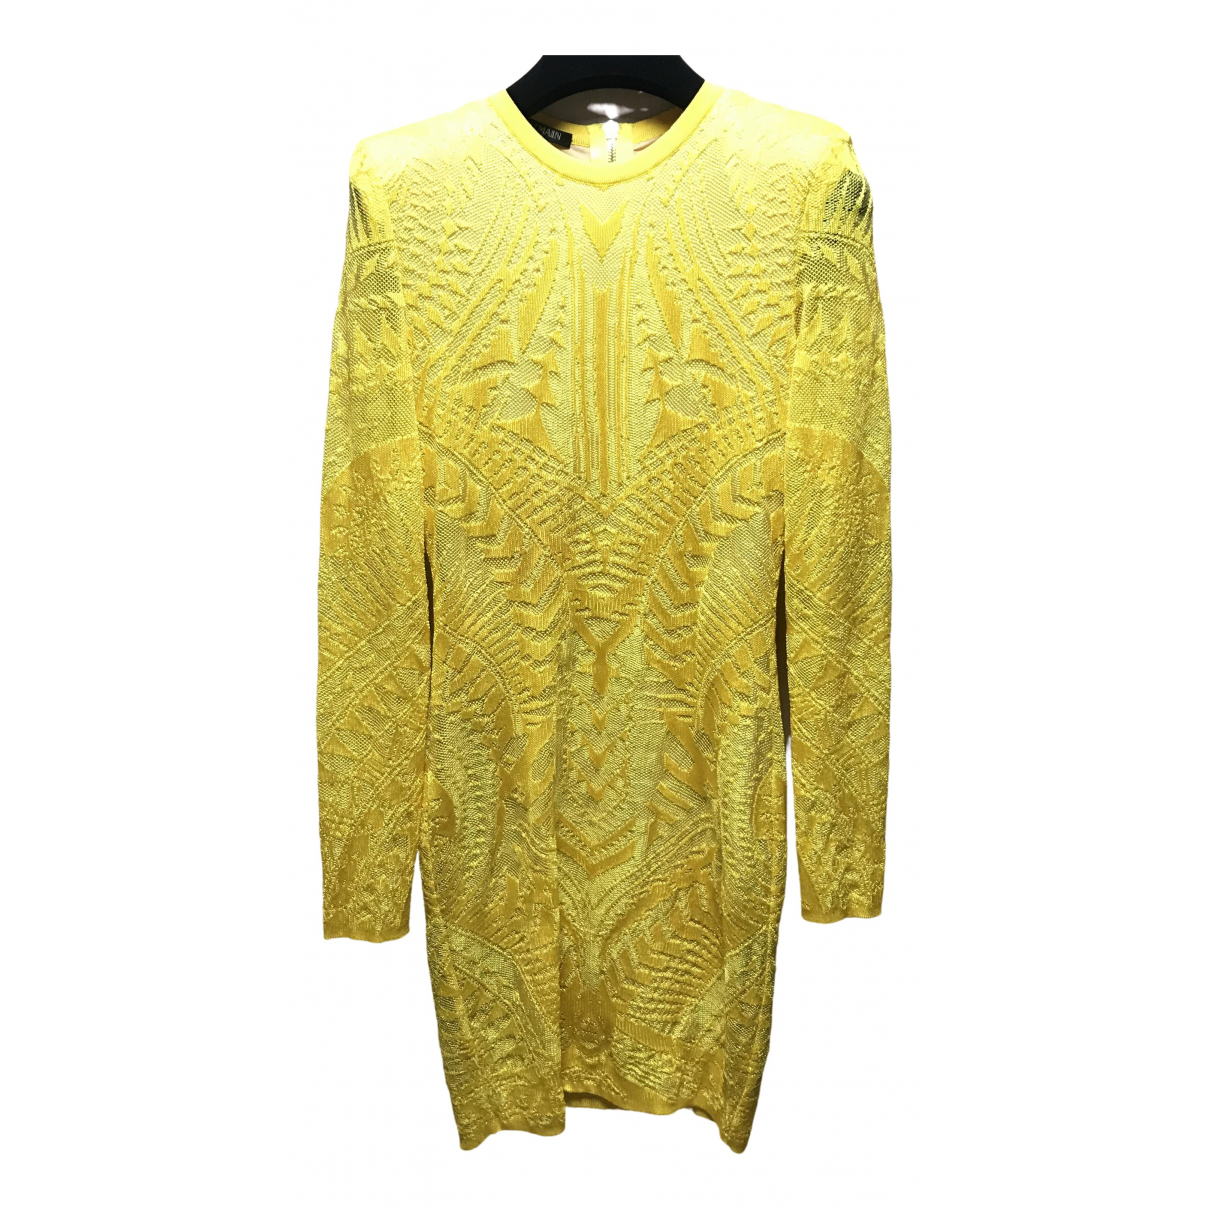 Balmain \N Yellow dress for Women 36 FR